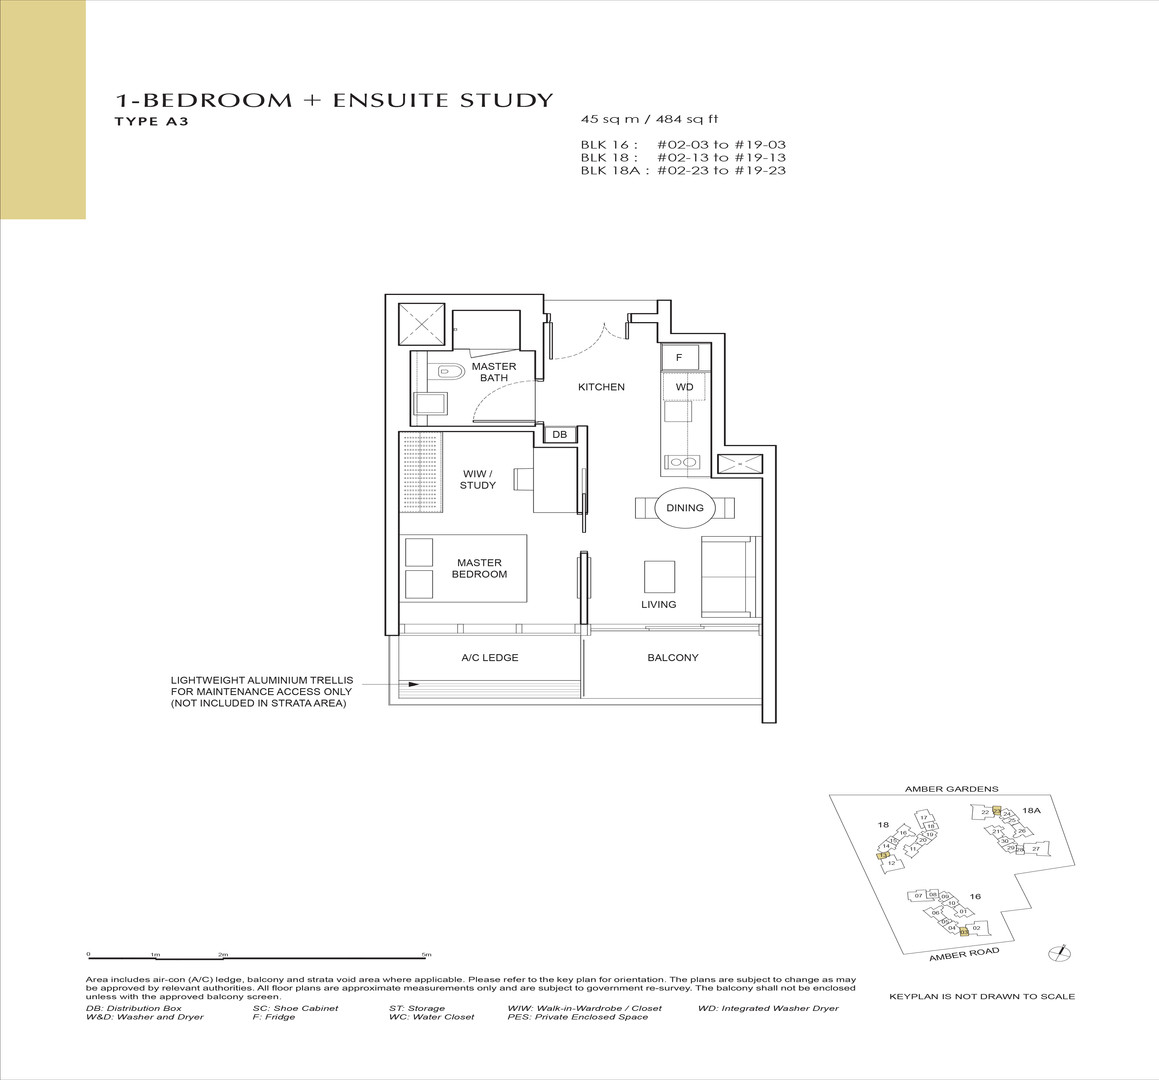 1-Bedroom+EnsuitestudioTypeA3.jpg